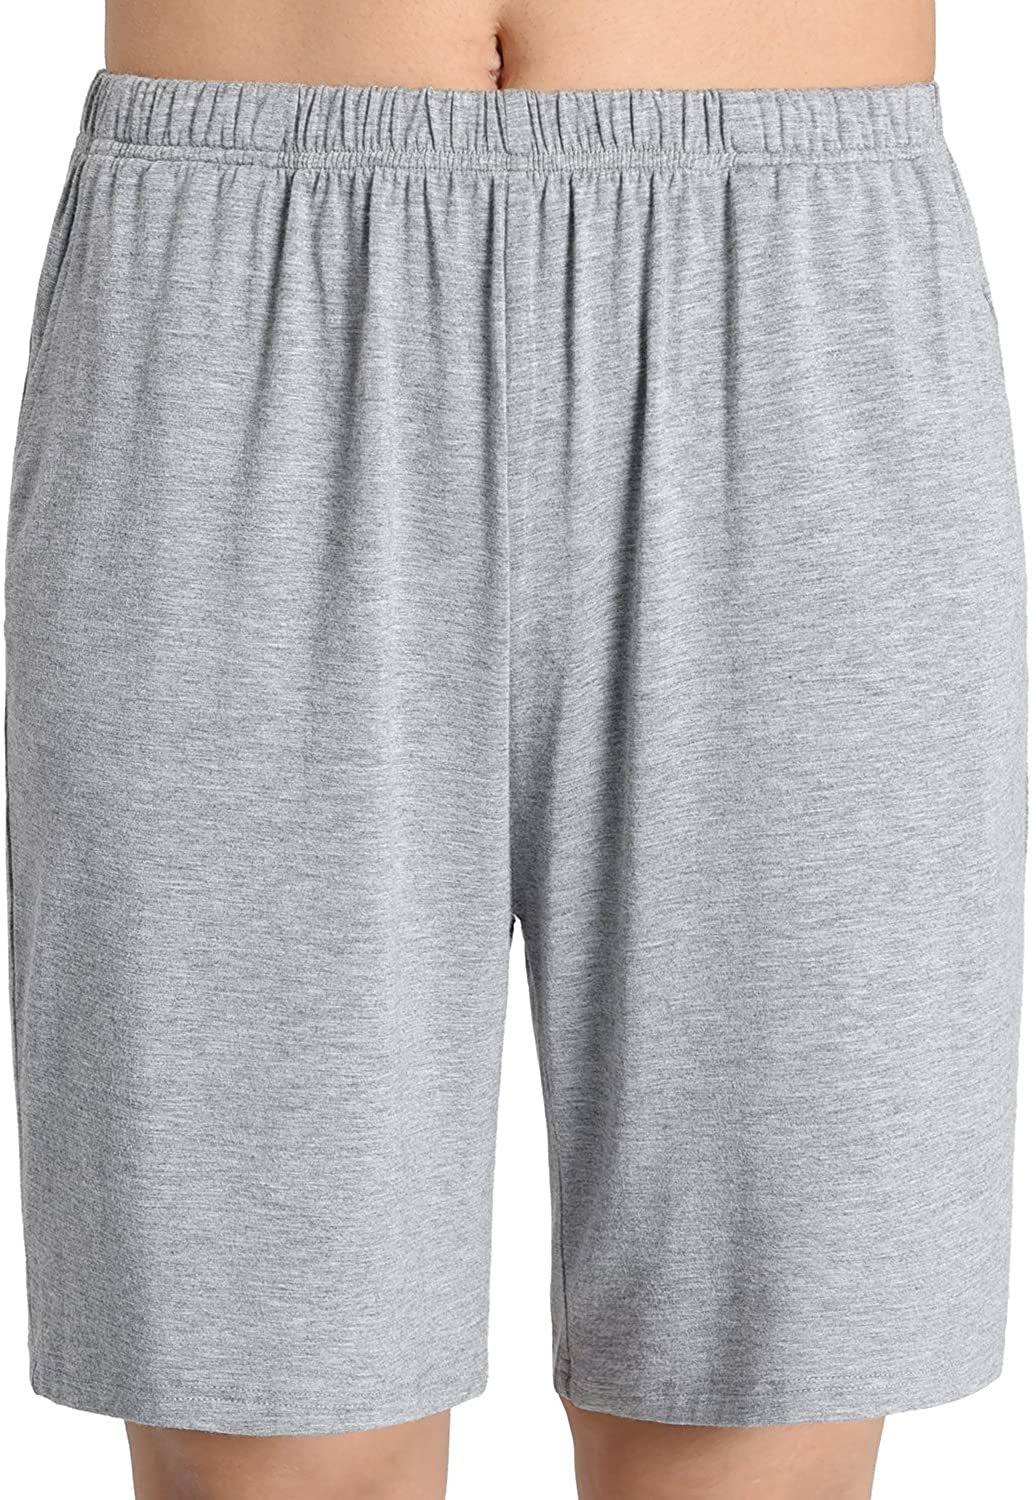 Latuza Womens Soft Sleep Pajama Shorts